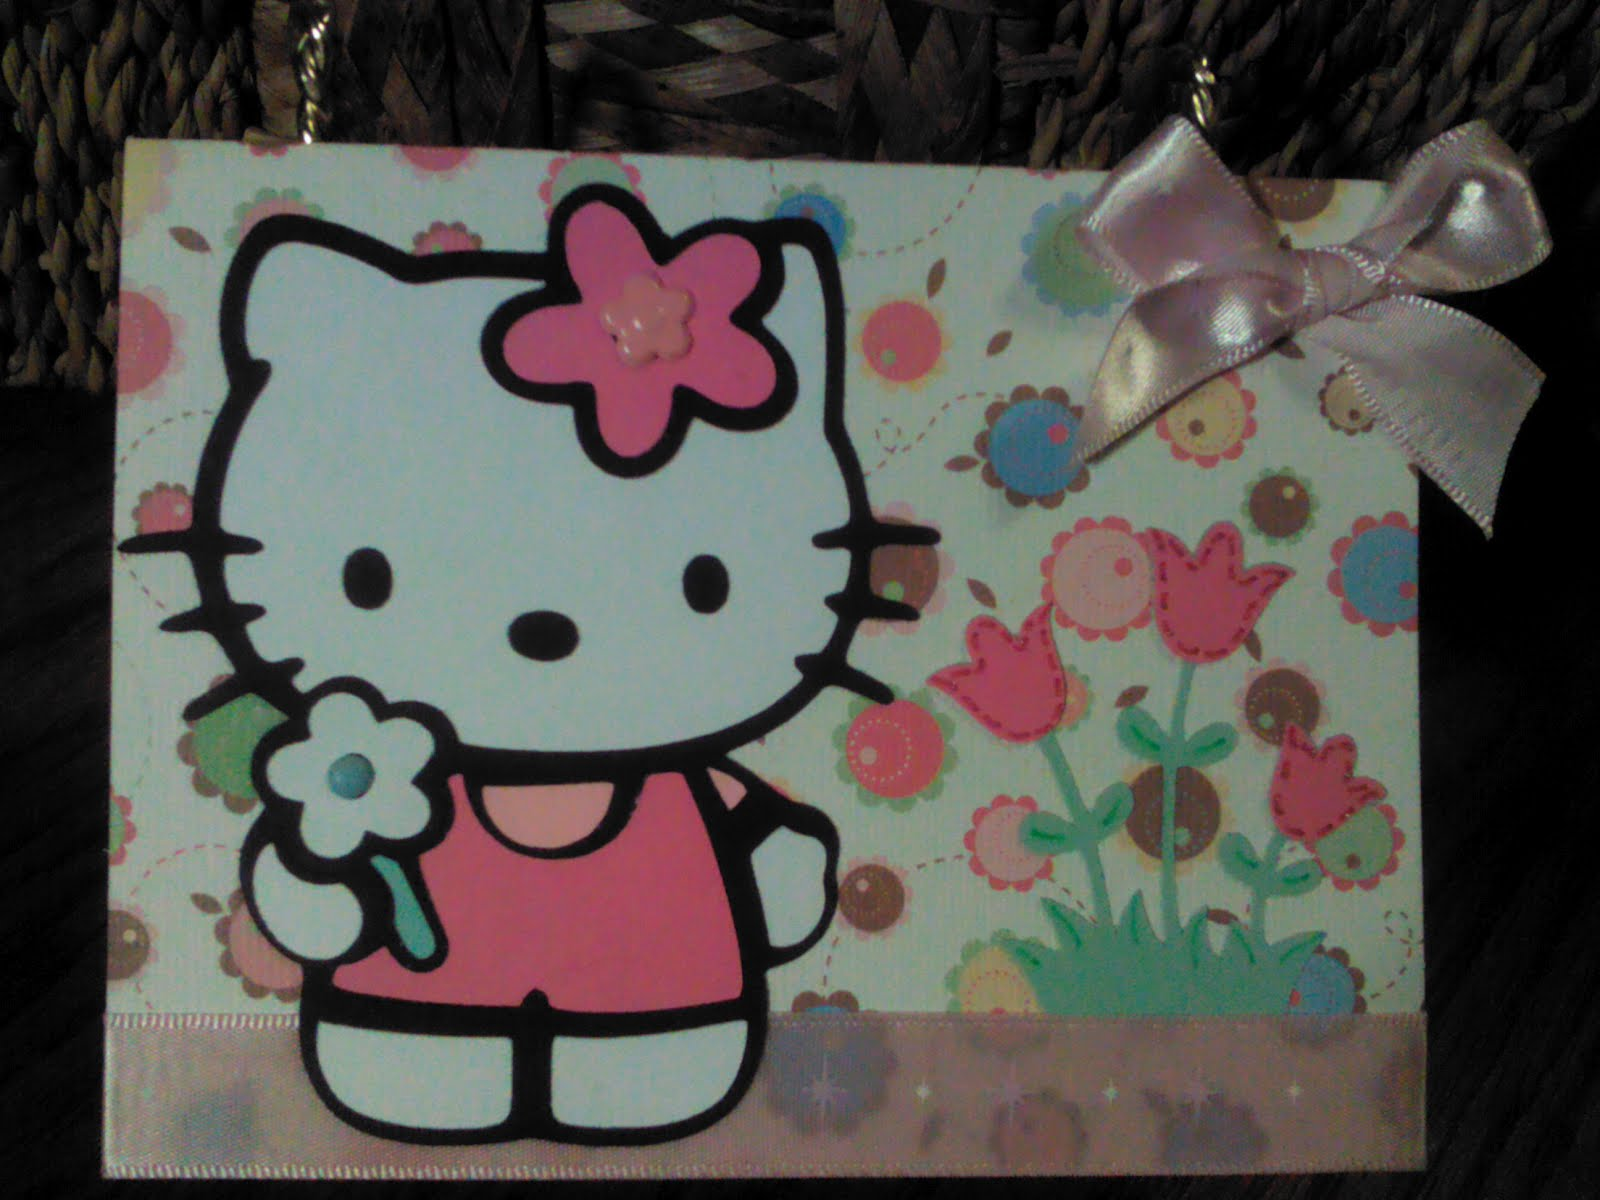 Time lapse creations hello kitty birthday card products used cricut expressiongypsycreate a critter and hello kitty greetings cricut cartridges provo craft card base cannot remember manufacturer m4hsunfo